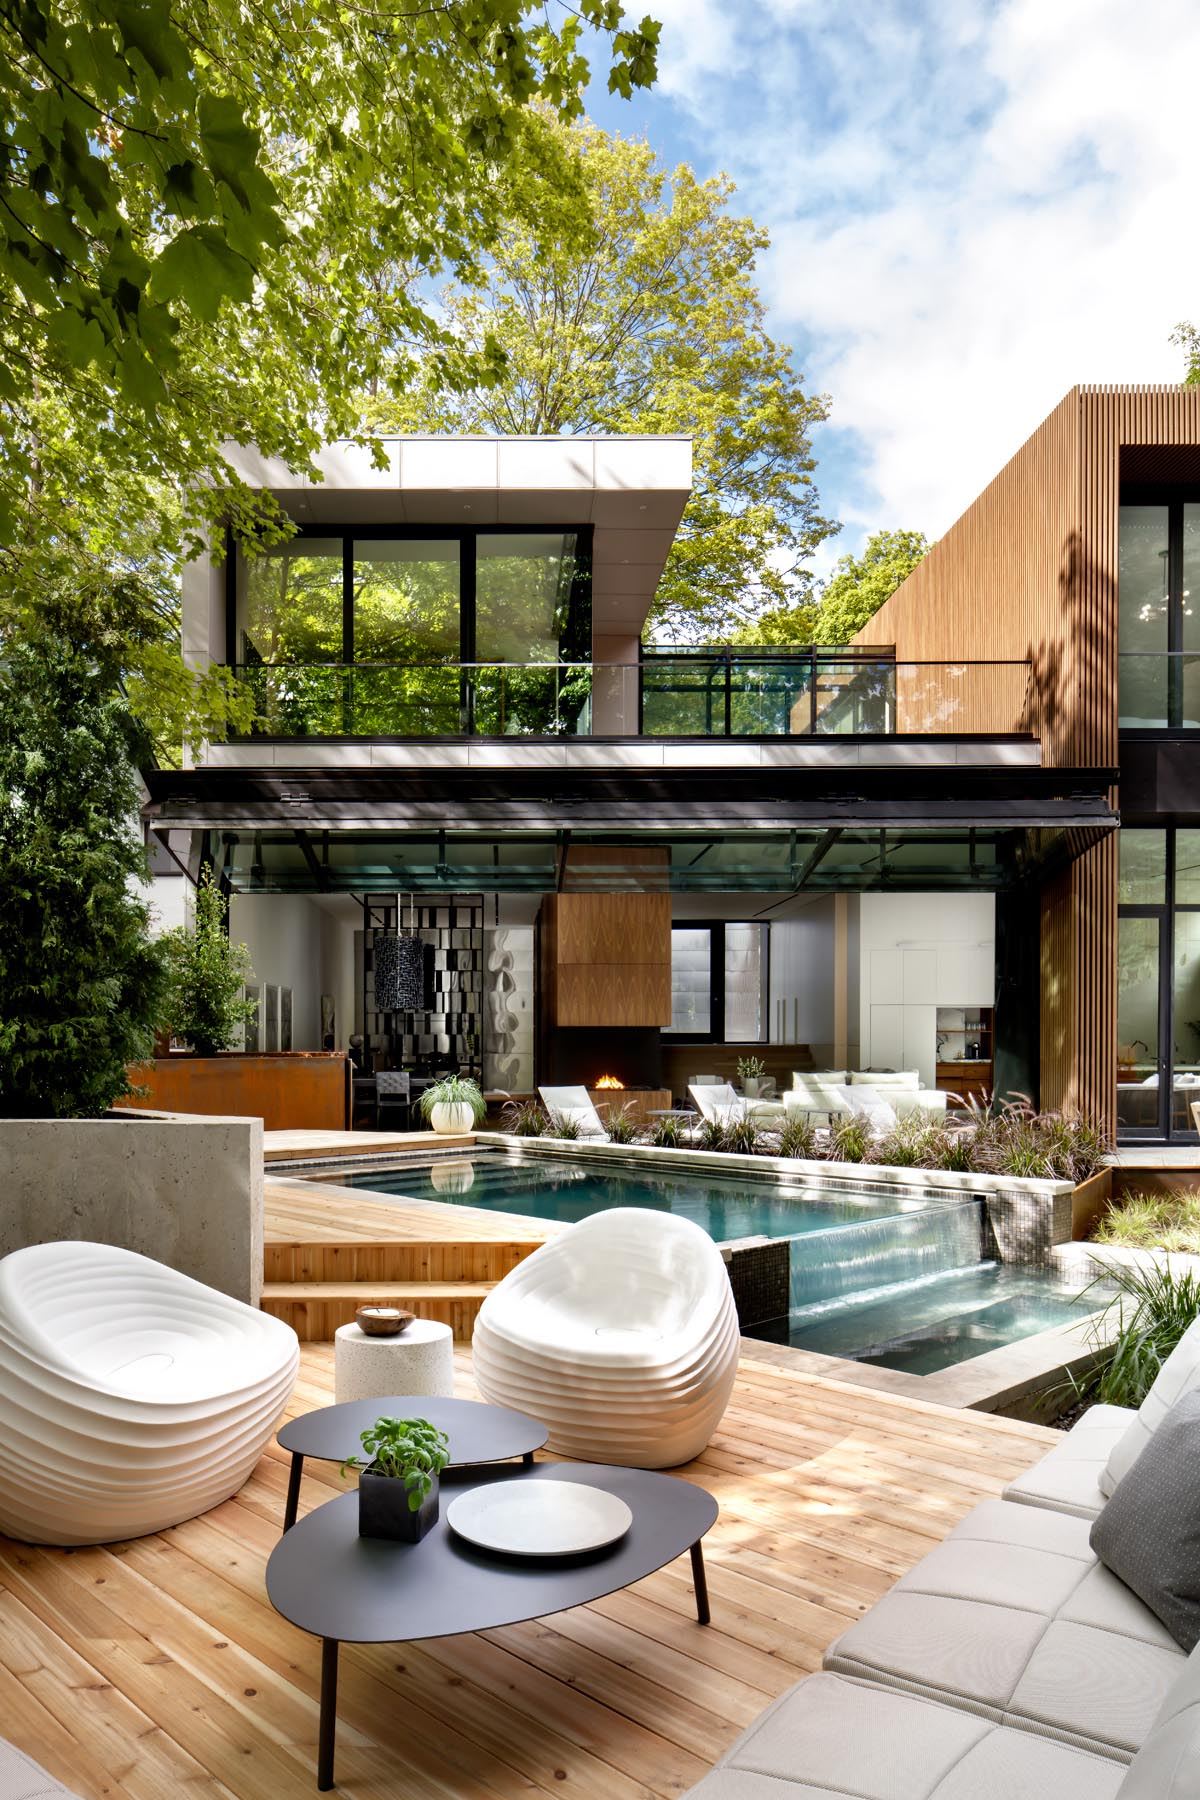 This modern outdoor space has been landscaped with a variety of different areas, including a swimming pool and deck, a lounge area with outdoor kitchen and fireplace, and a dining area.